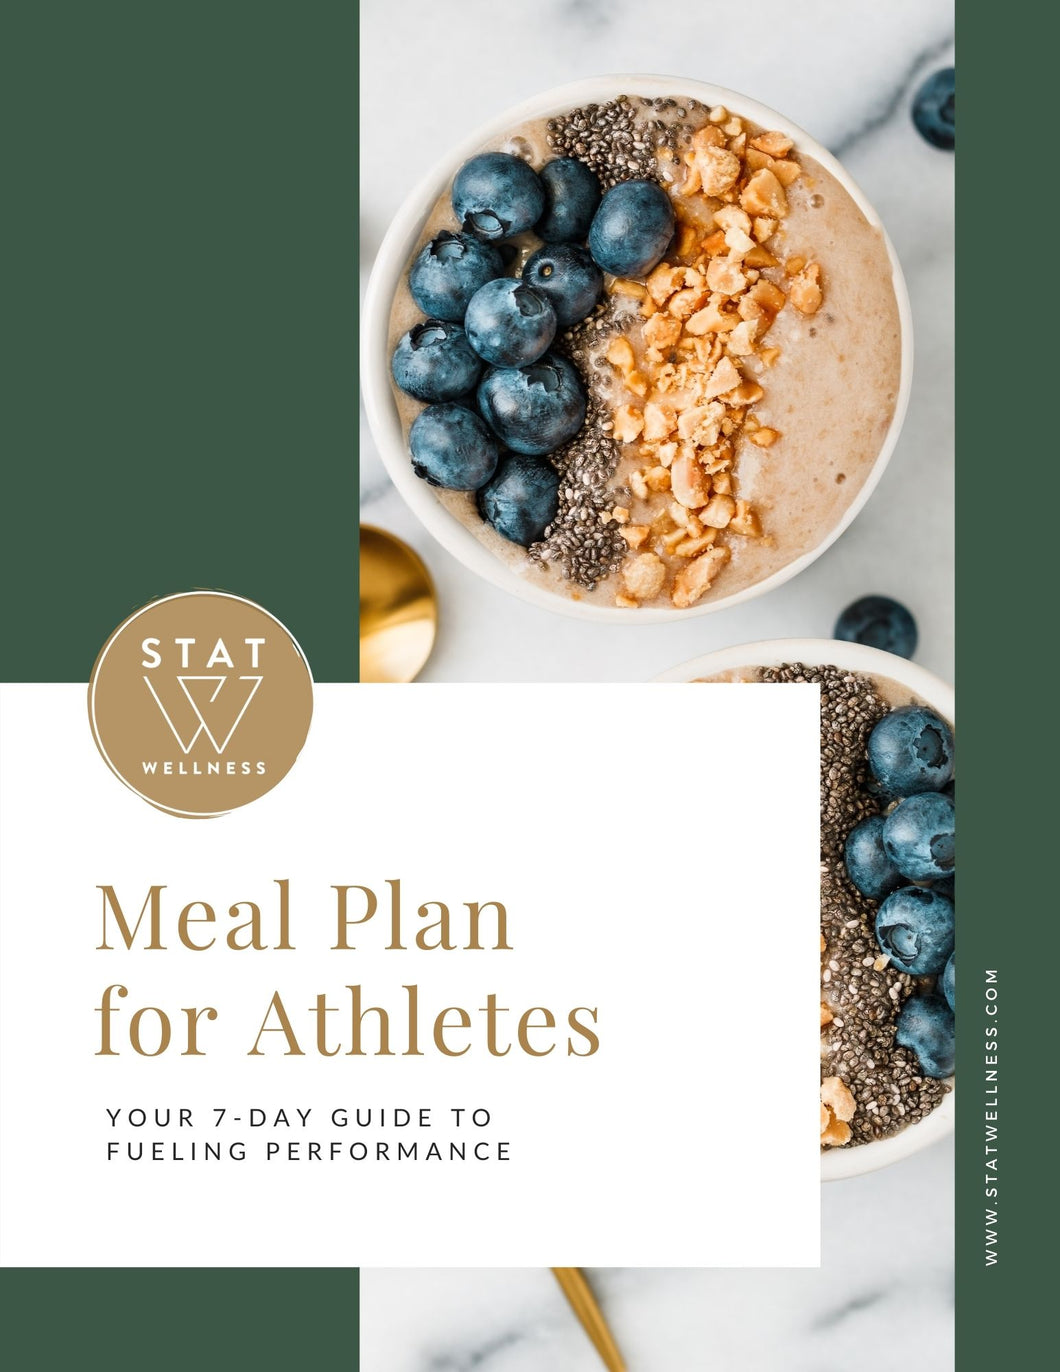 1 Week Meal Plan for Athletes